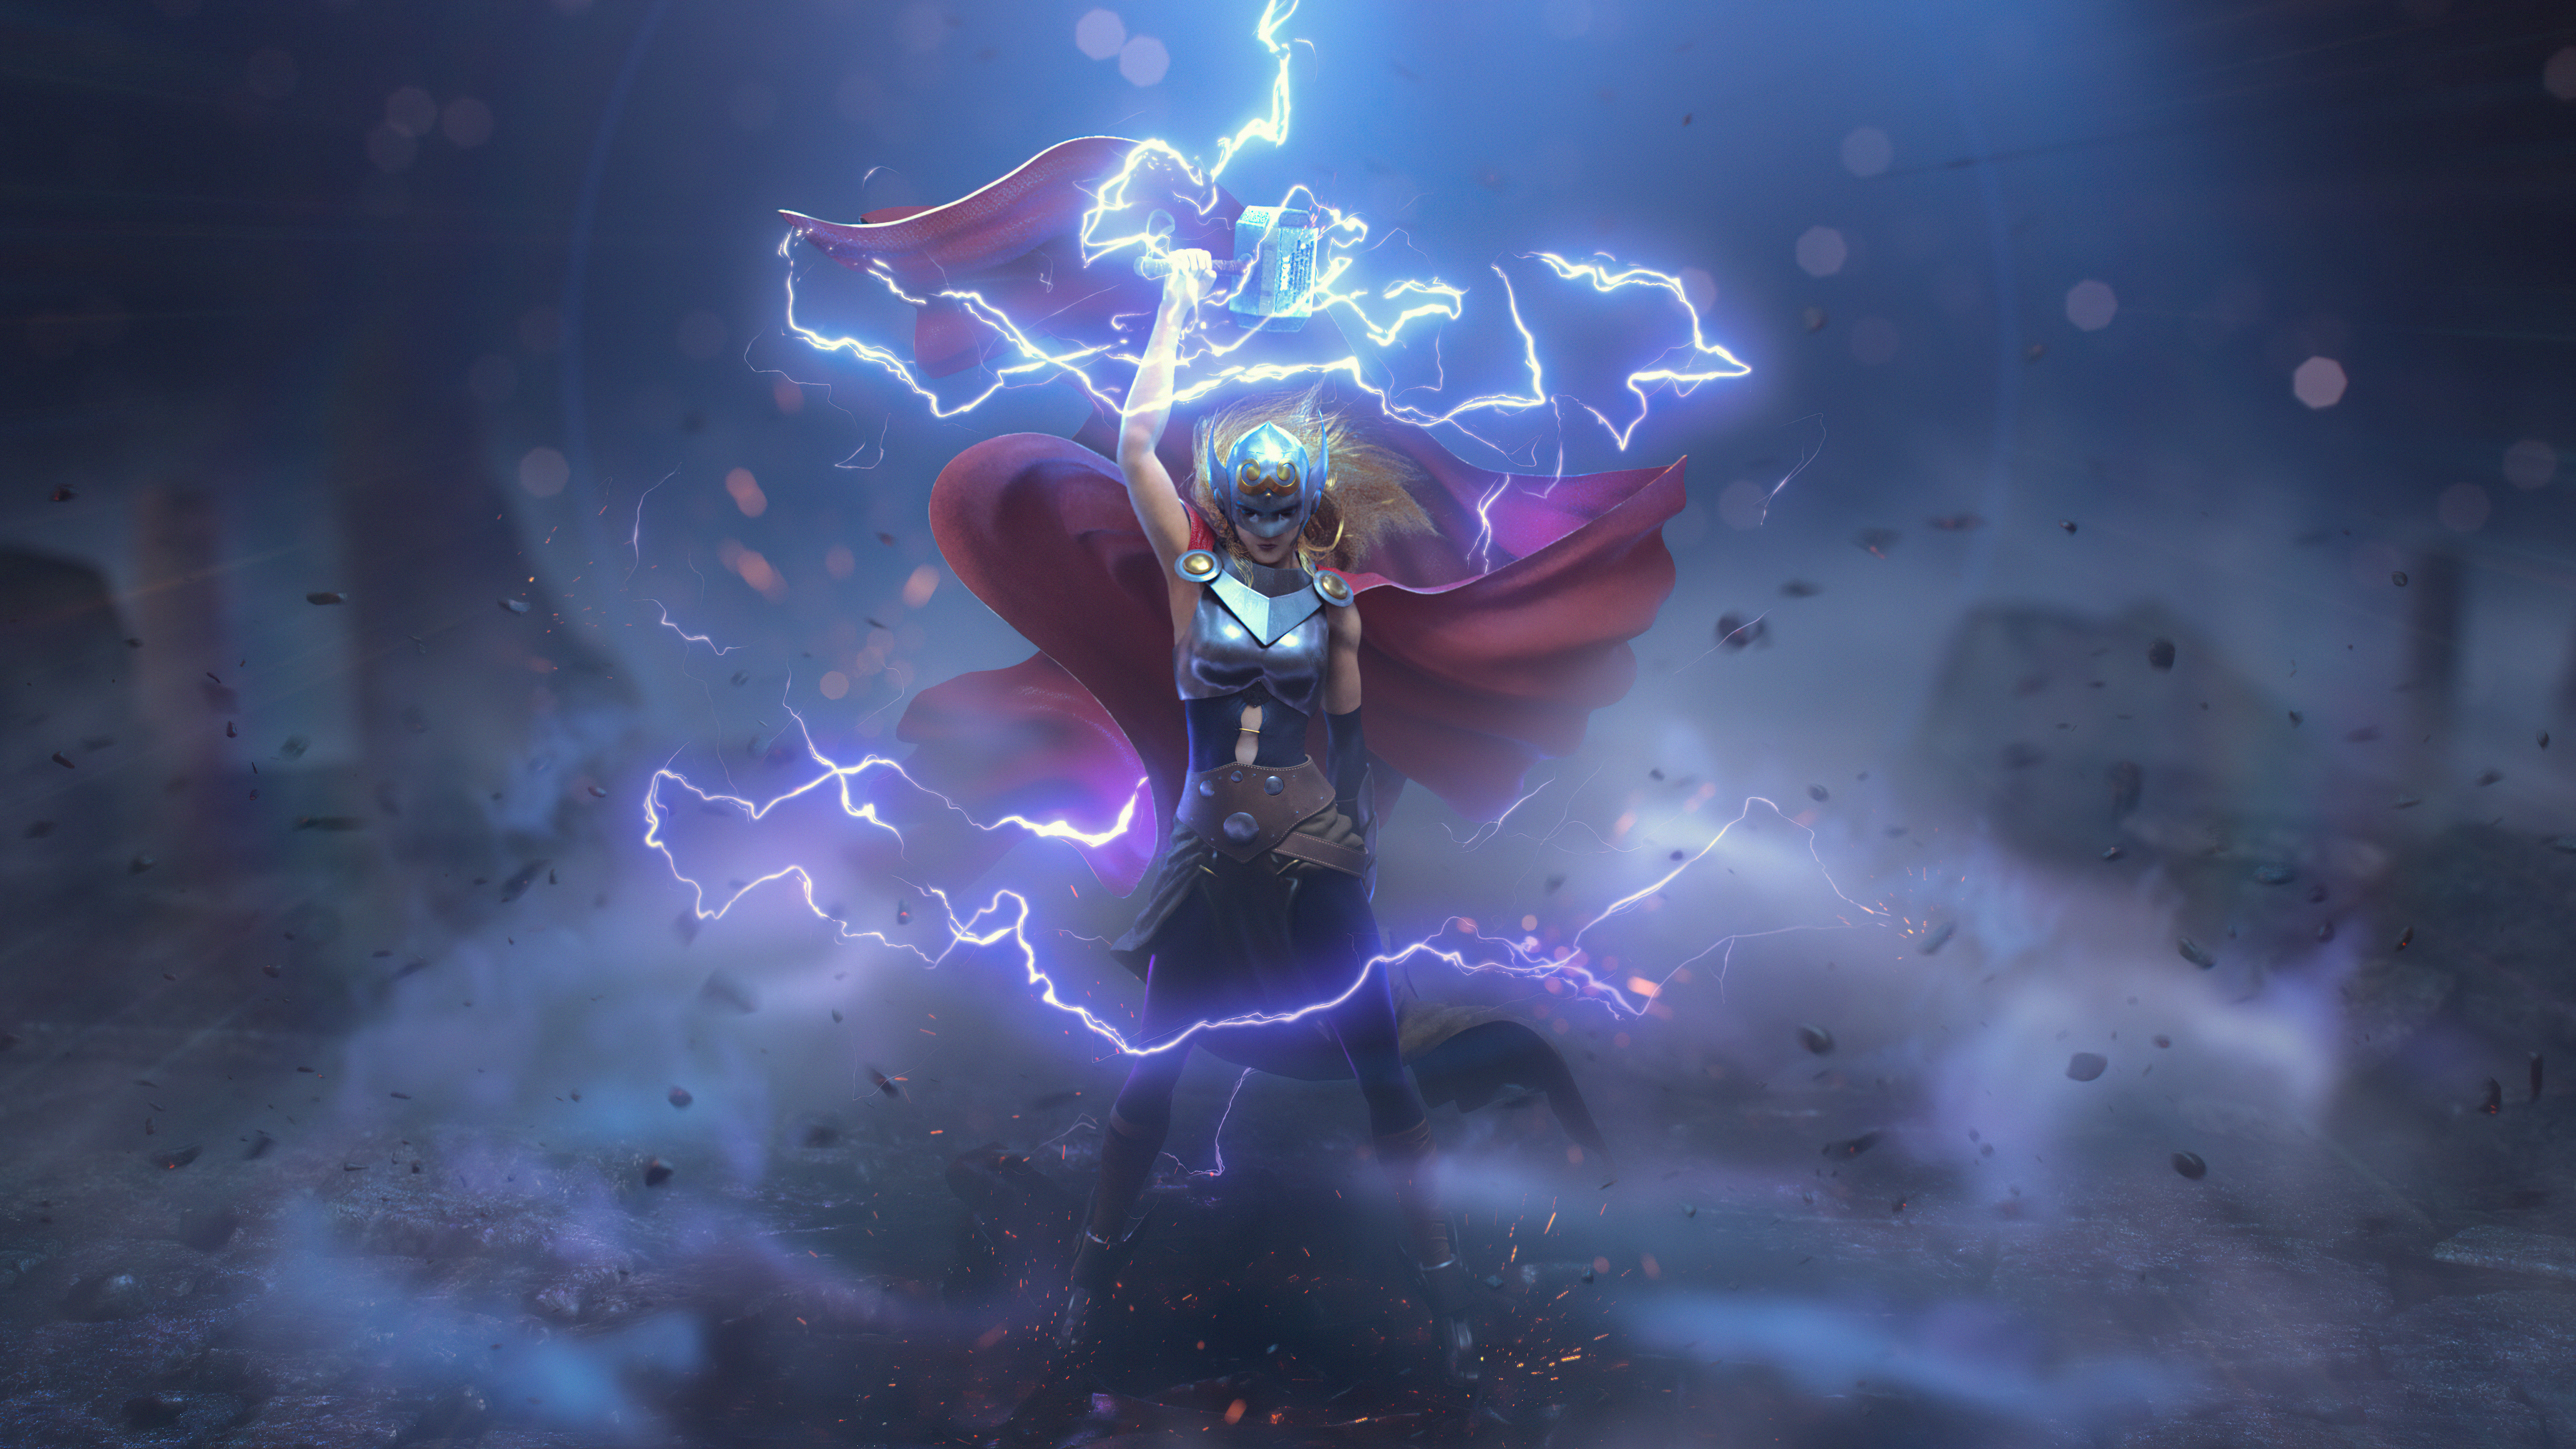 Wallpaper Thor in the middle of thunder